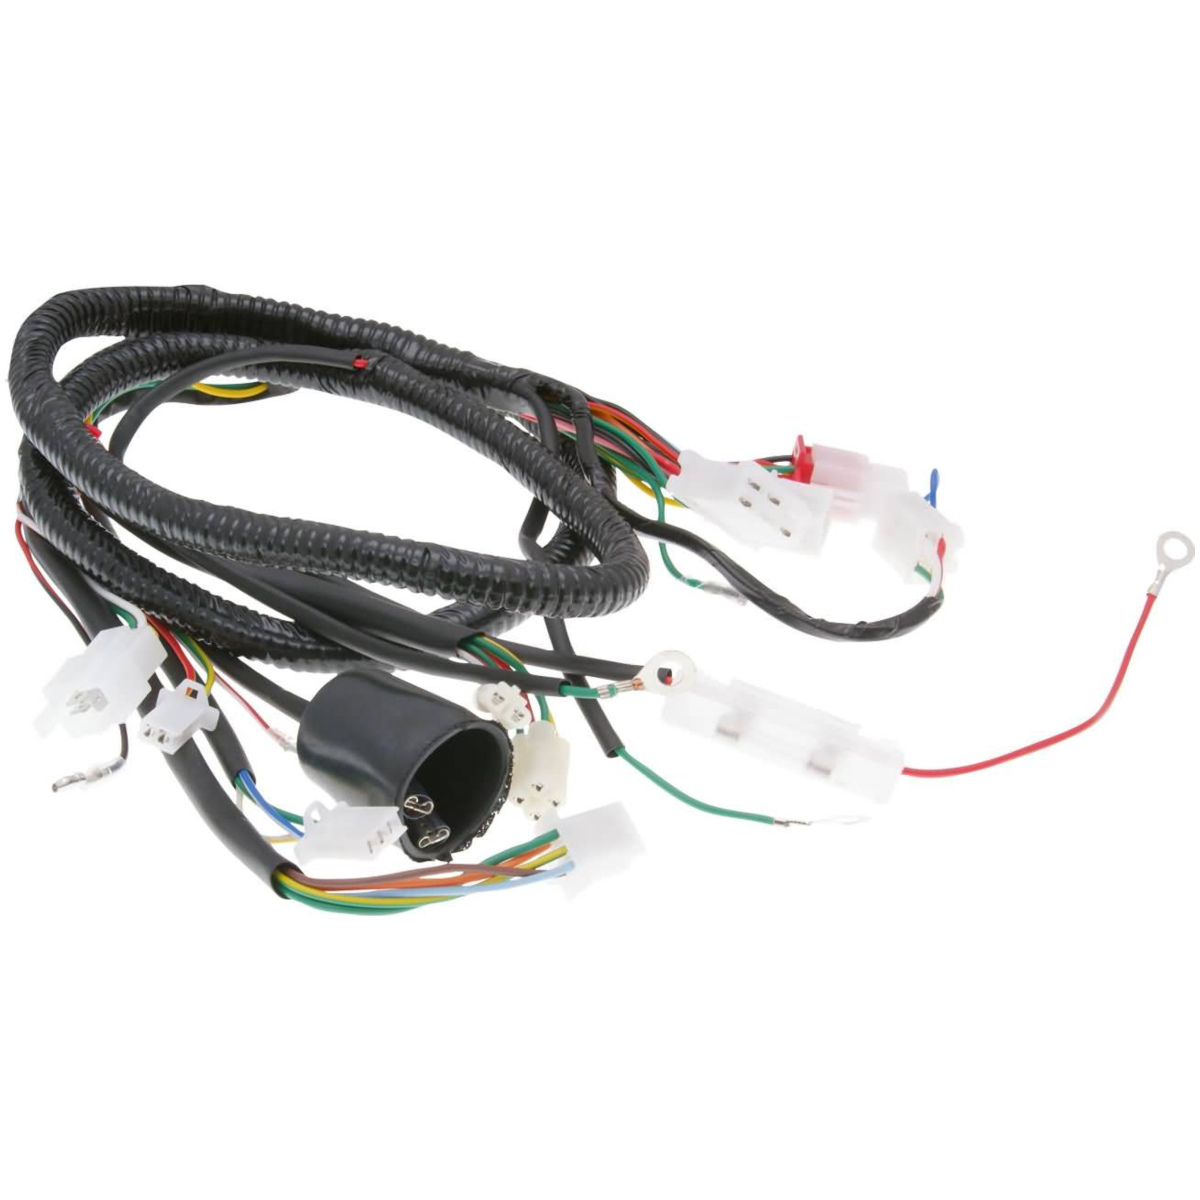 main wire / general wire harness for Jinlun Fighter 50 ...  Wire Harness on